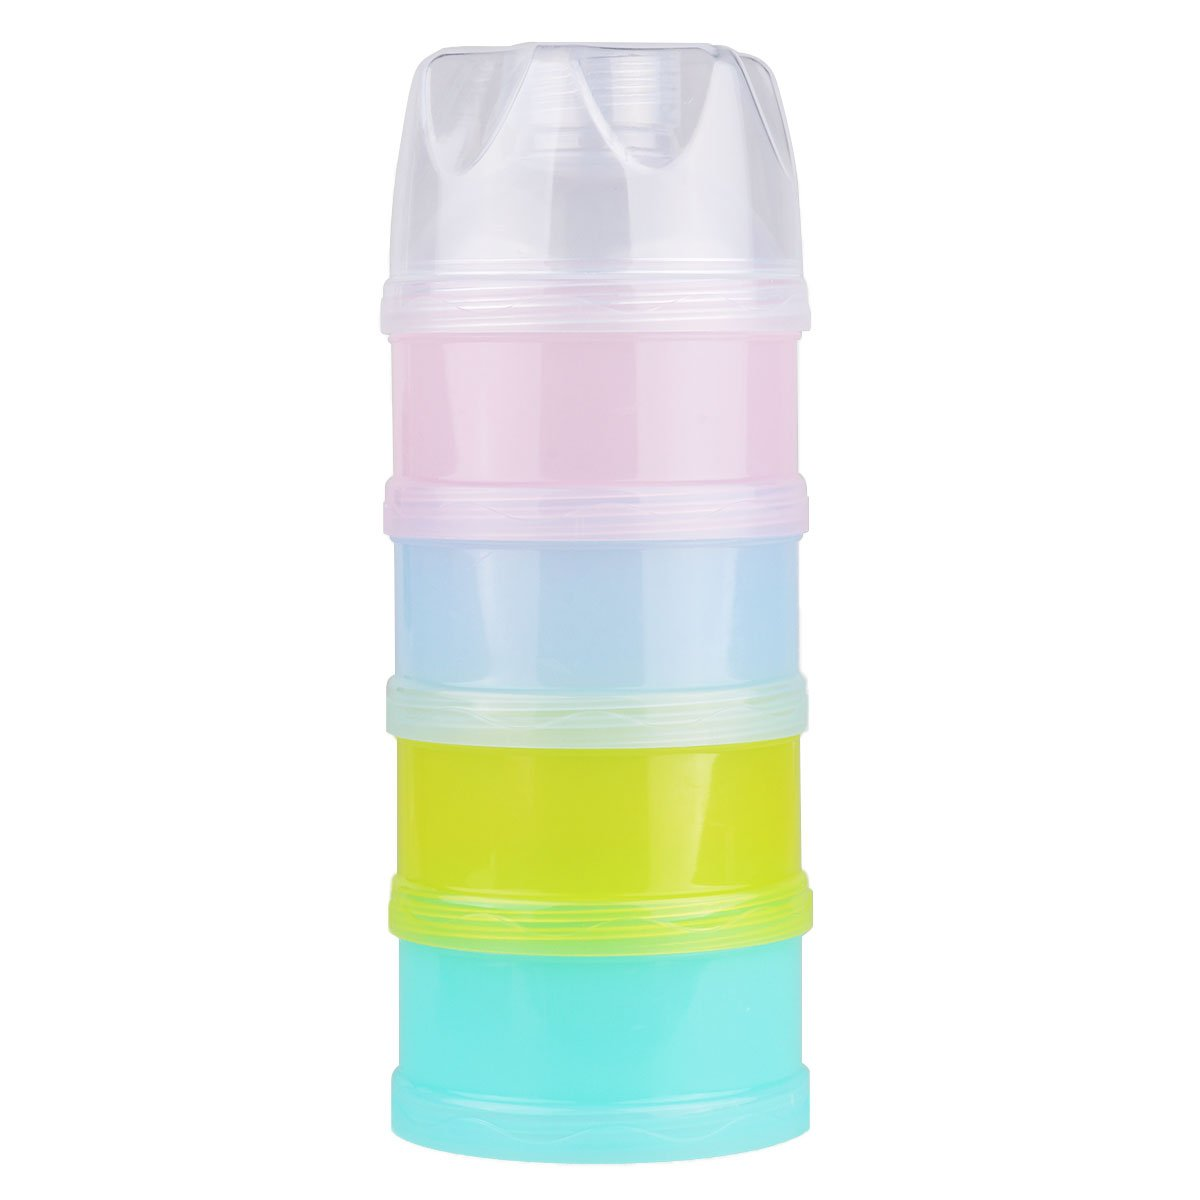 Tiaobug 4 Layers Baby Milk Powder Formual Dispenser Portable Stackable Non-Spill Baby Feeding Food Fruit Snack Storage Container BPA Free T-10057579-UK